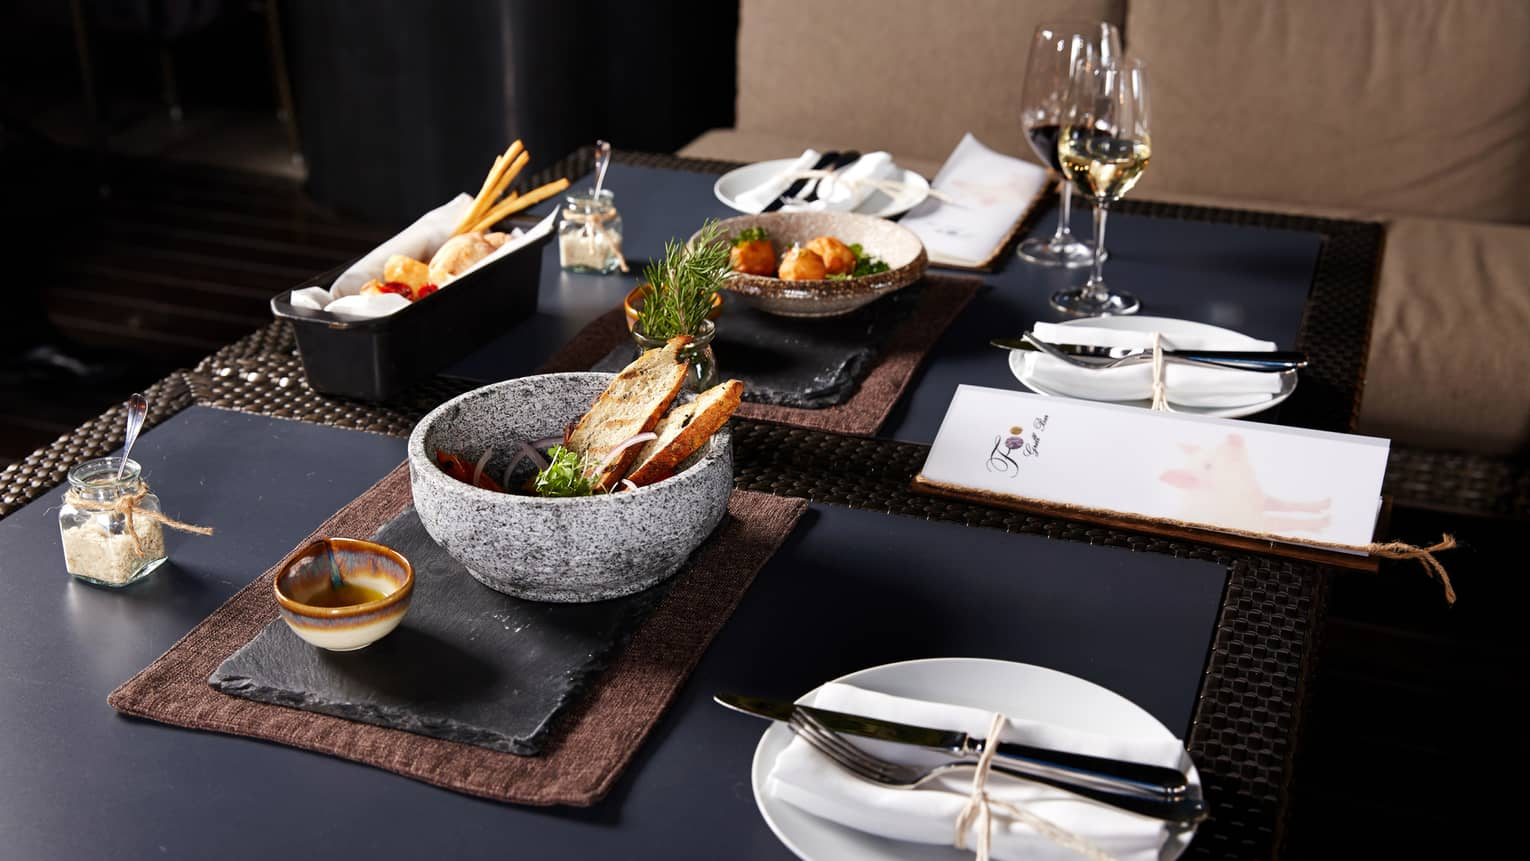 Foo dining table slate platters, bowls with toasts, appetizers